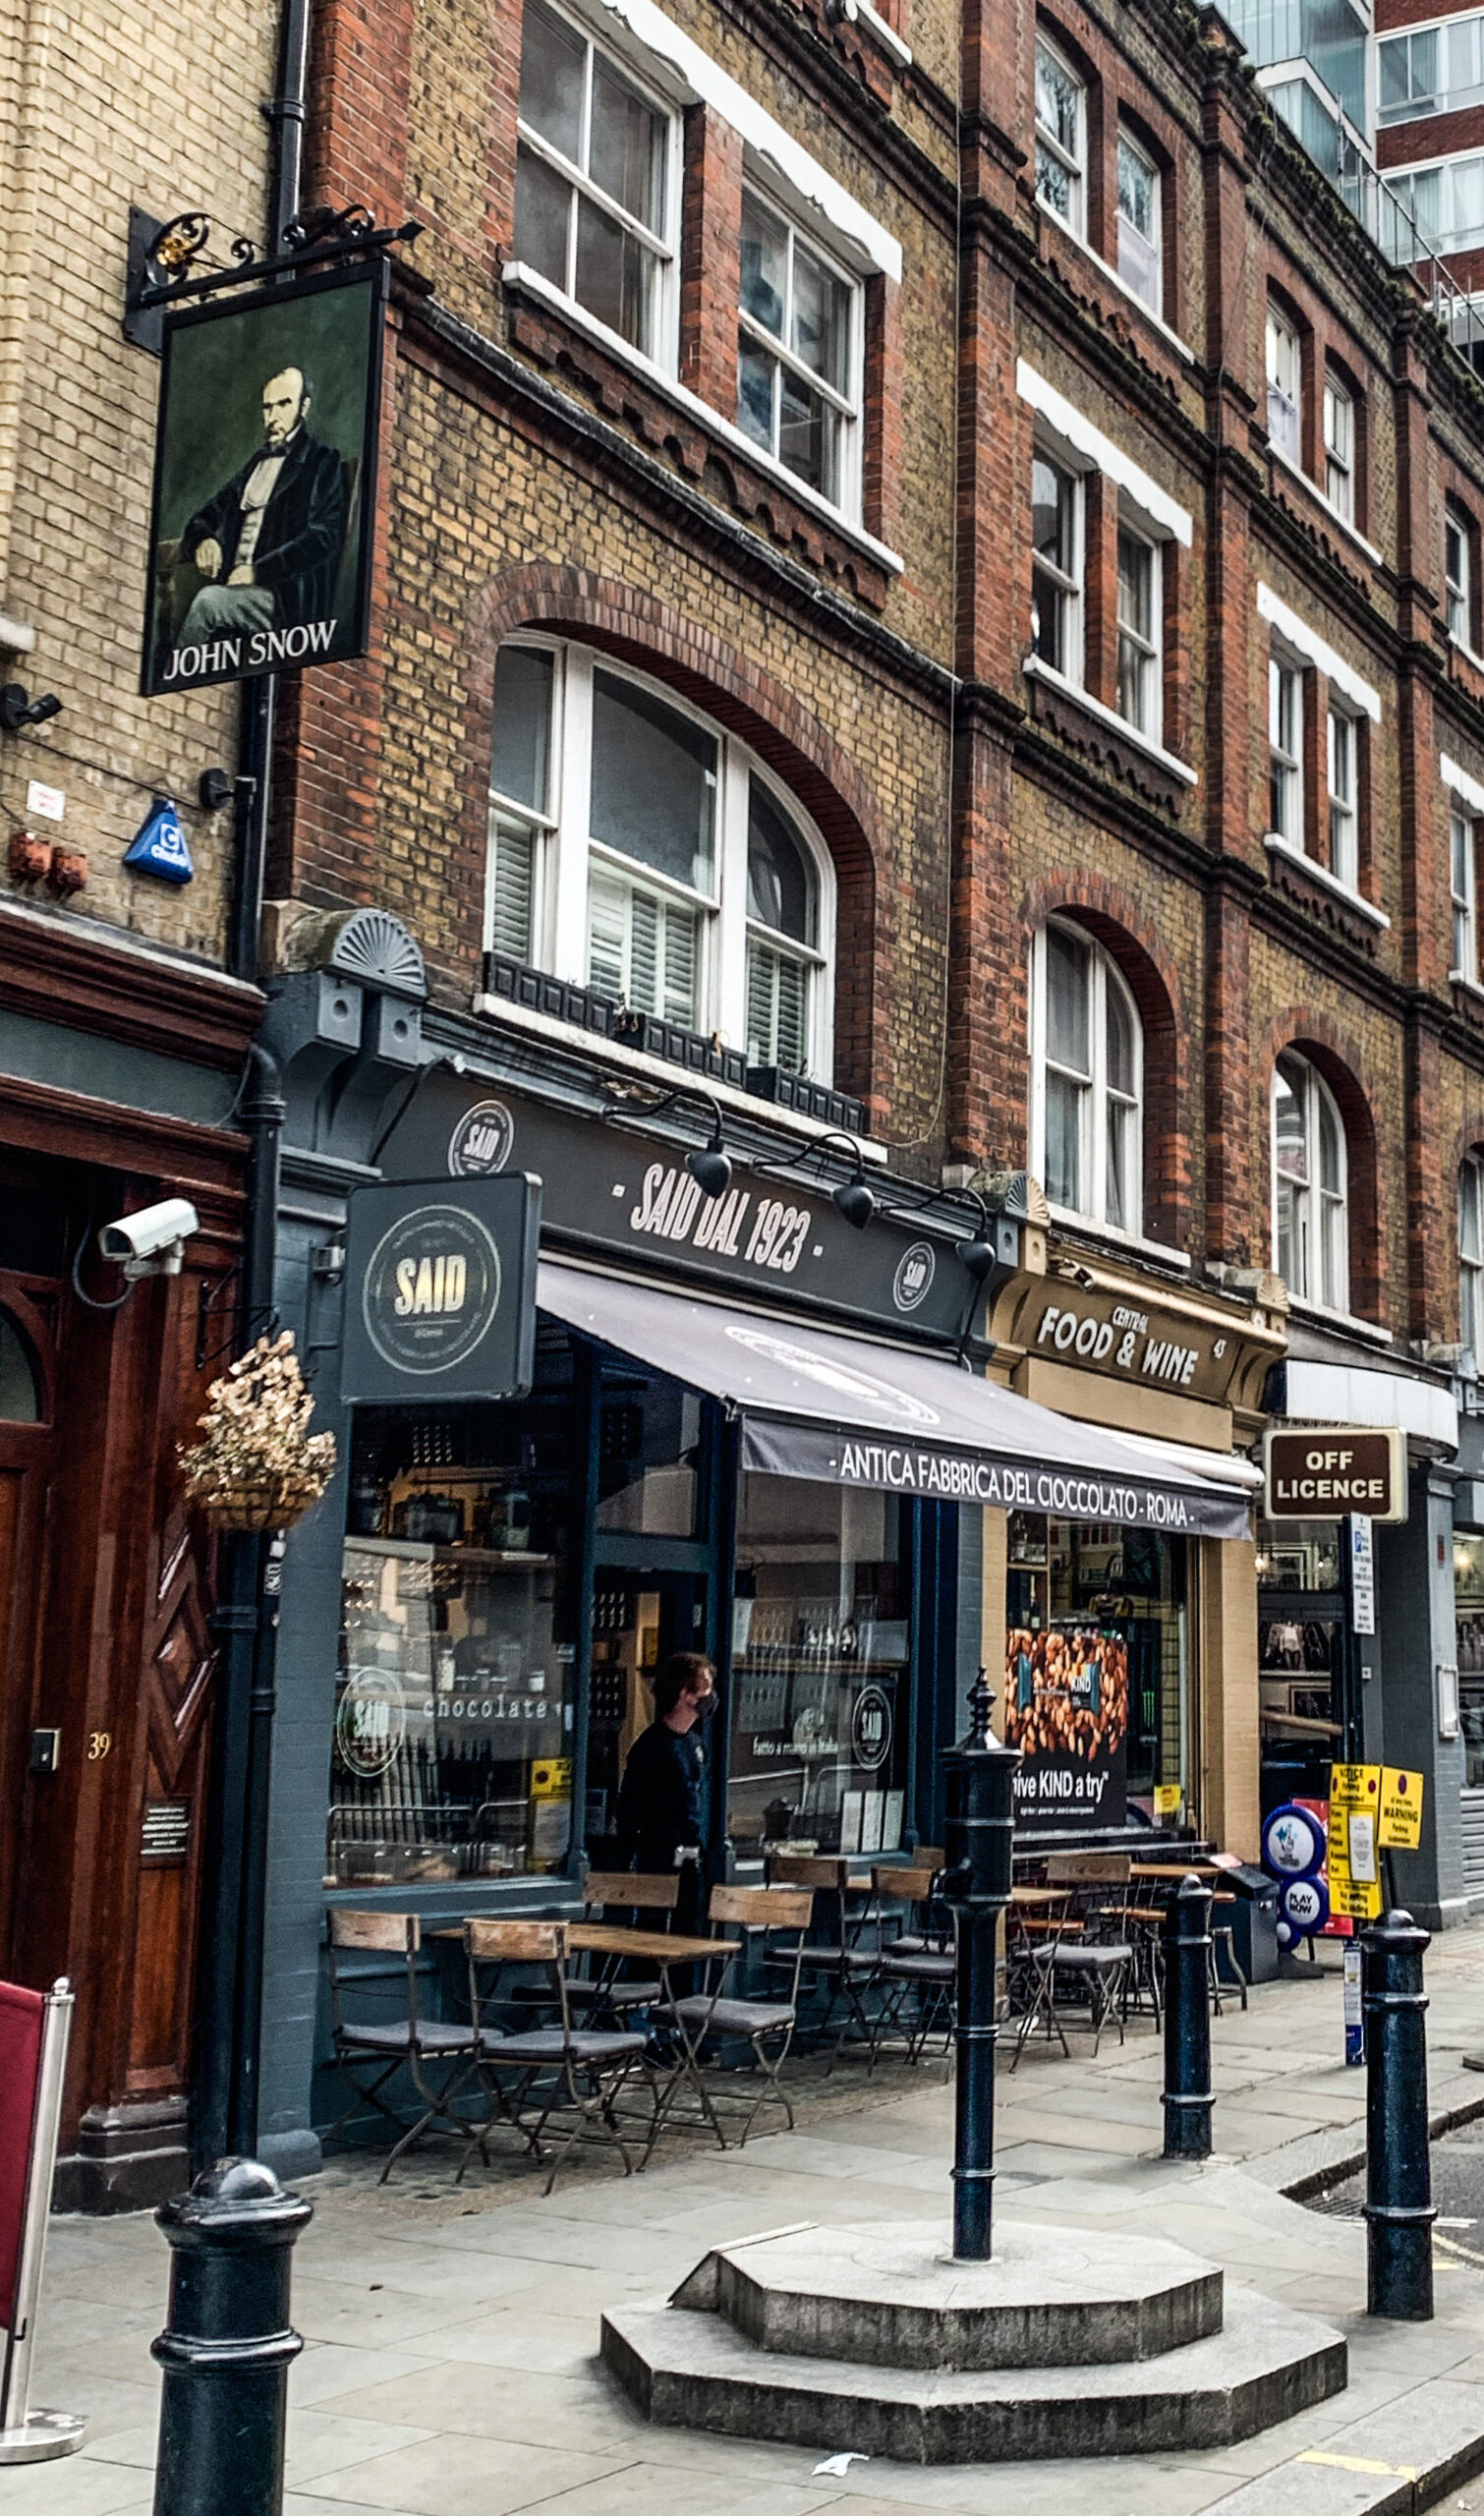 The John Snow Pub and the infamous tap in Soho - responsible for a Cholera outbreak in 1854.